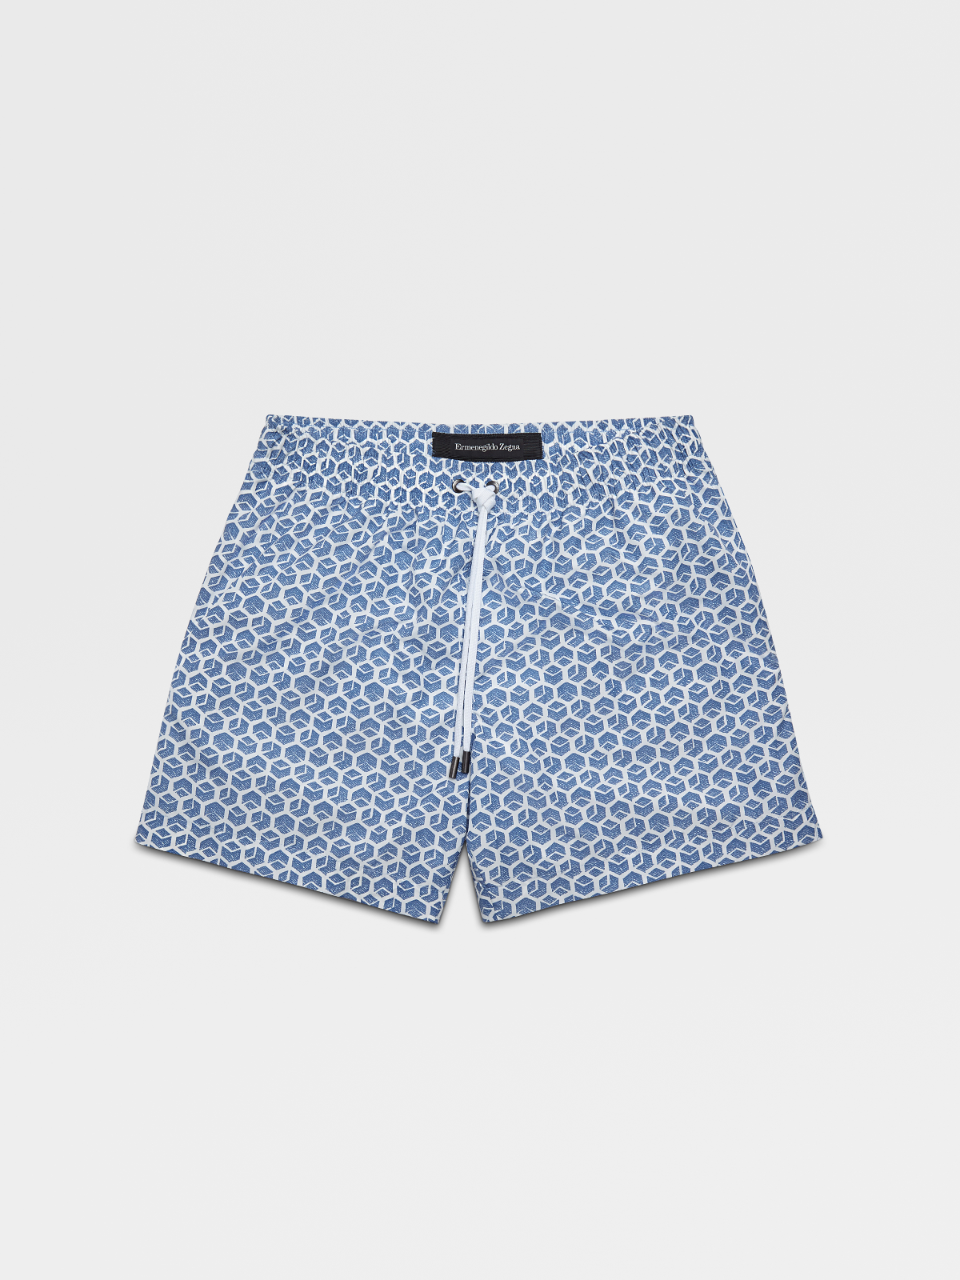 Hexagons Swim Boxers